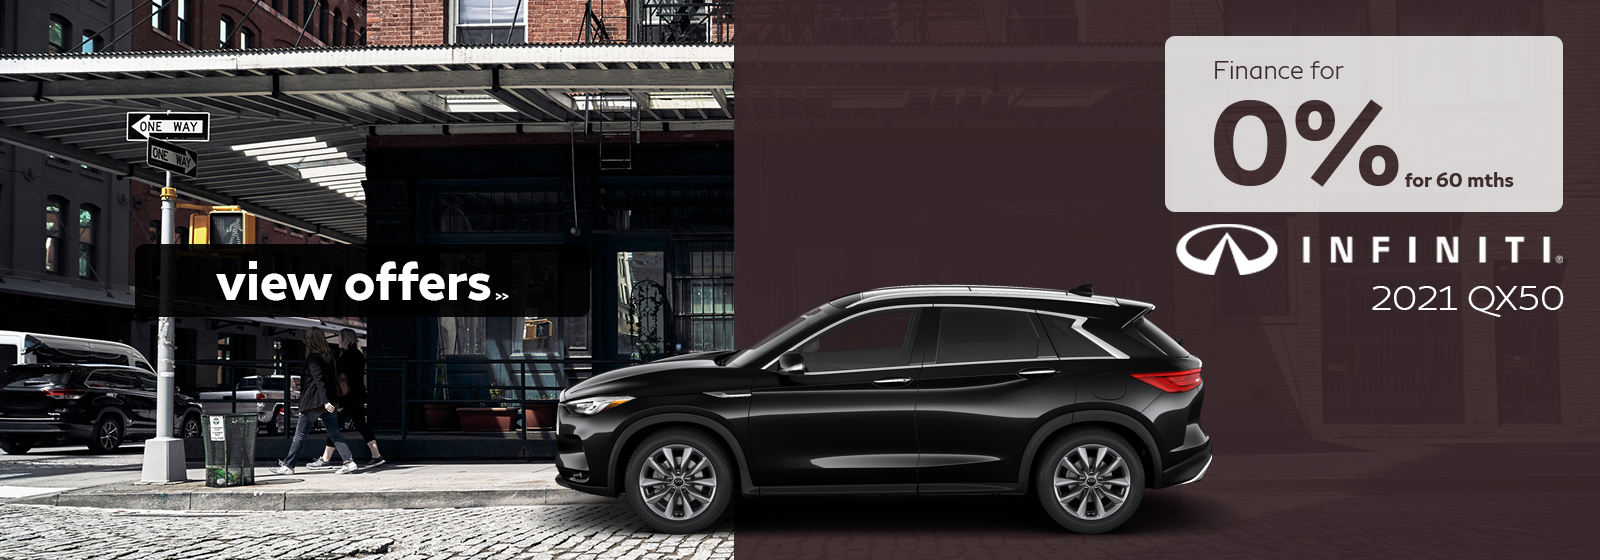 Finance a 2021 QX50 for as low as 0% for 60 months!